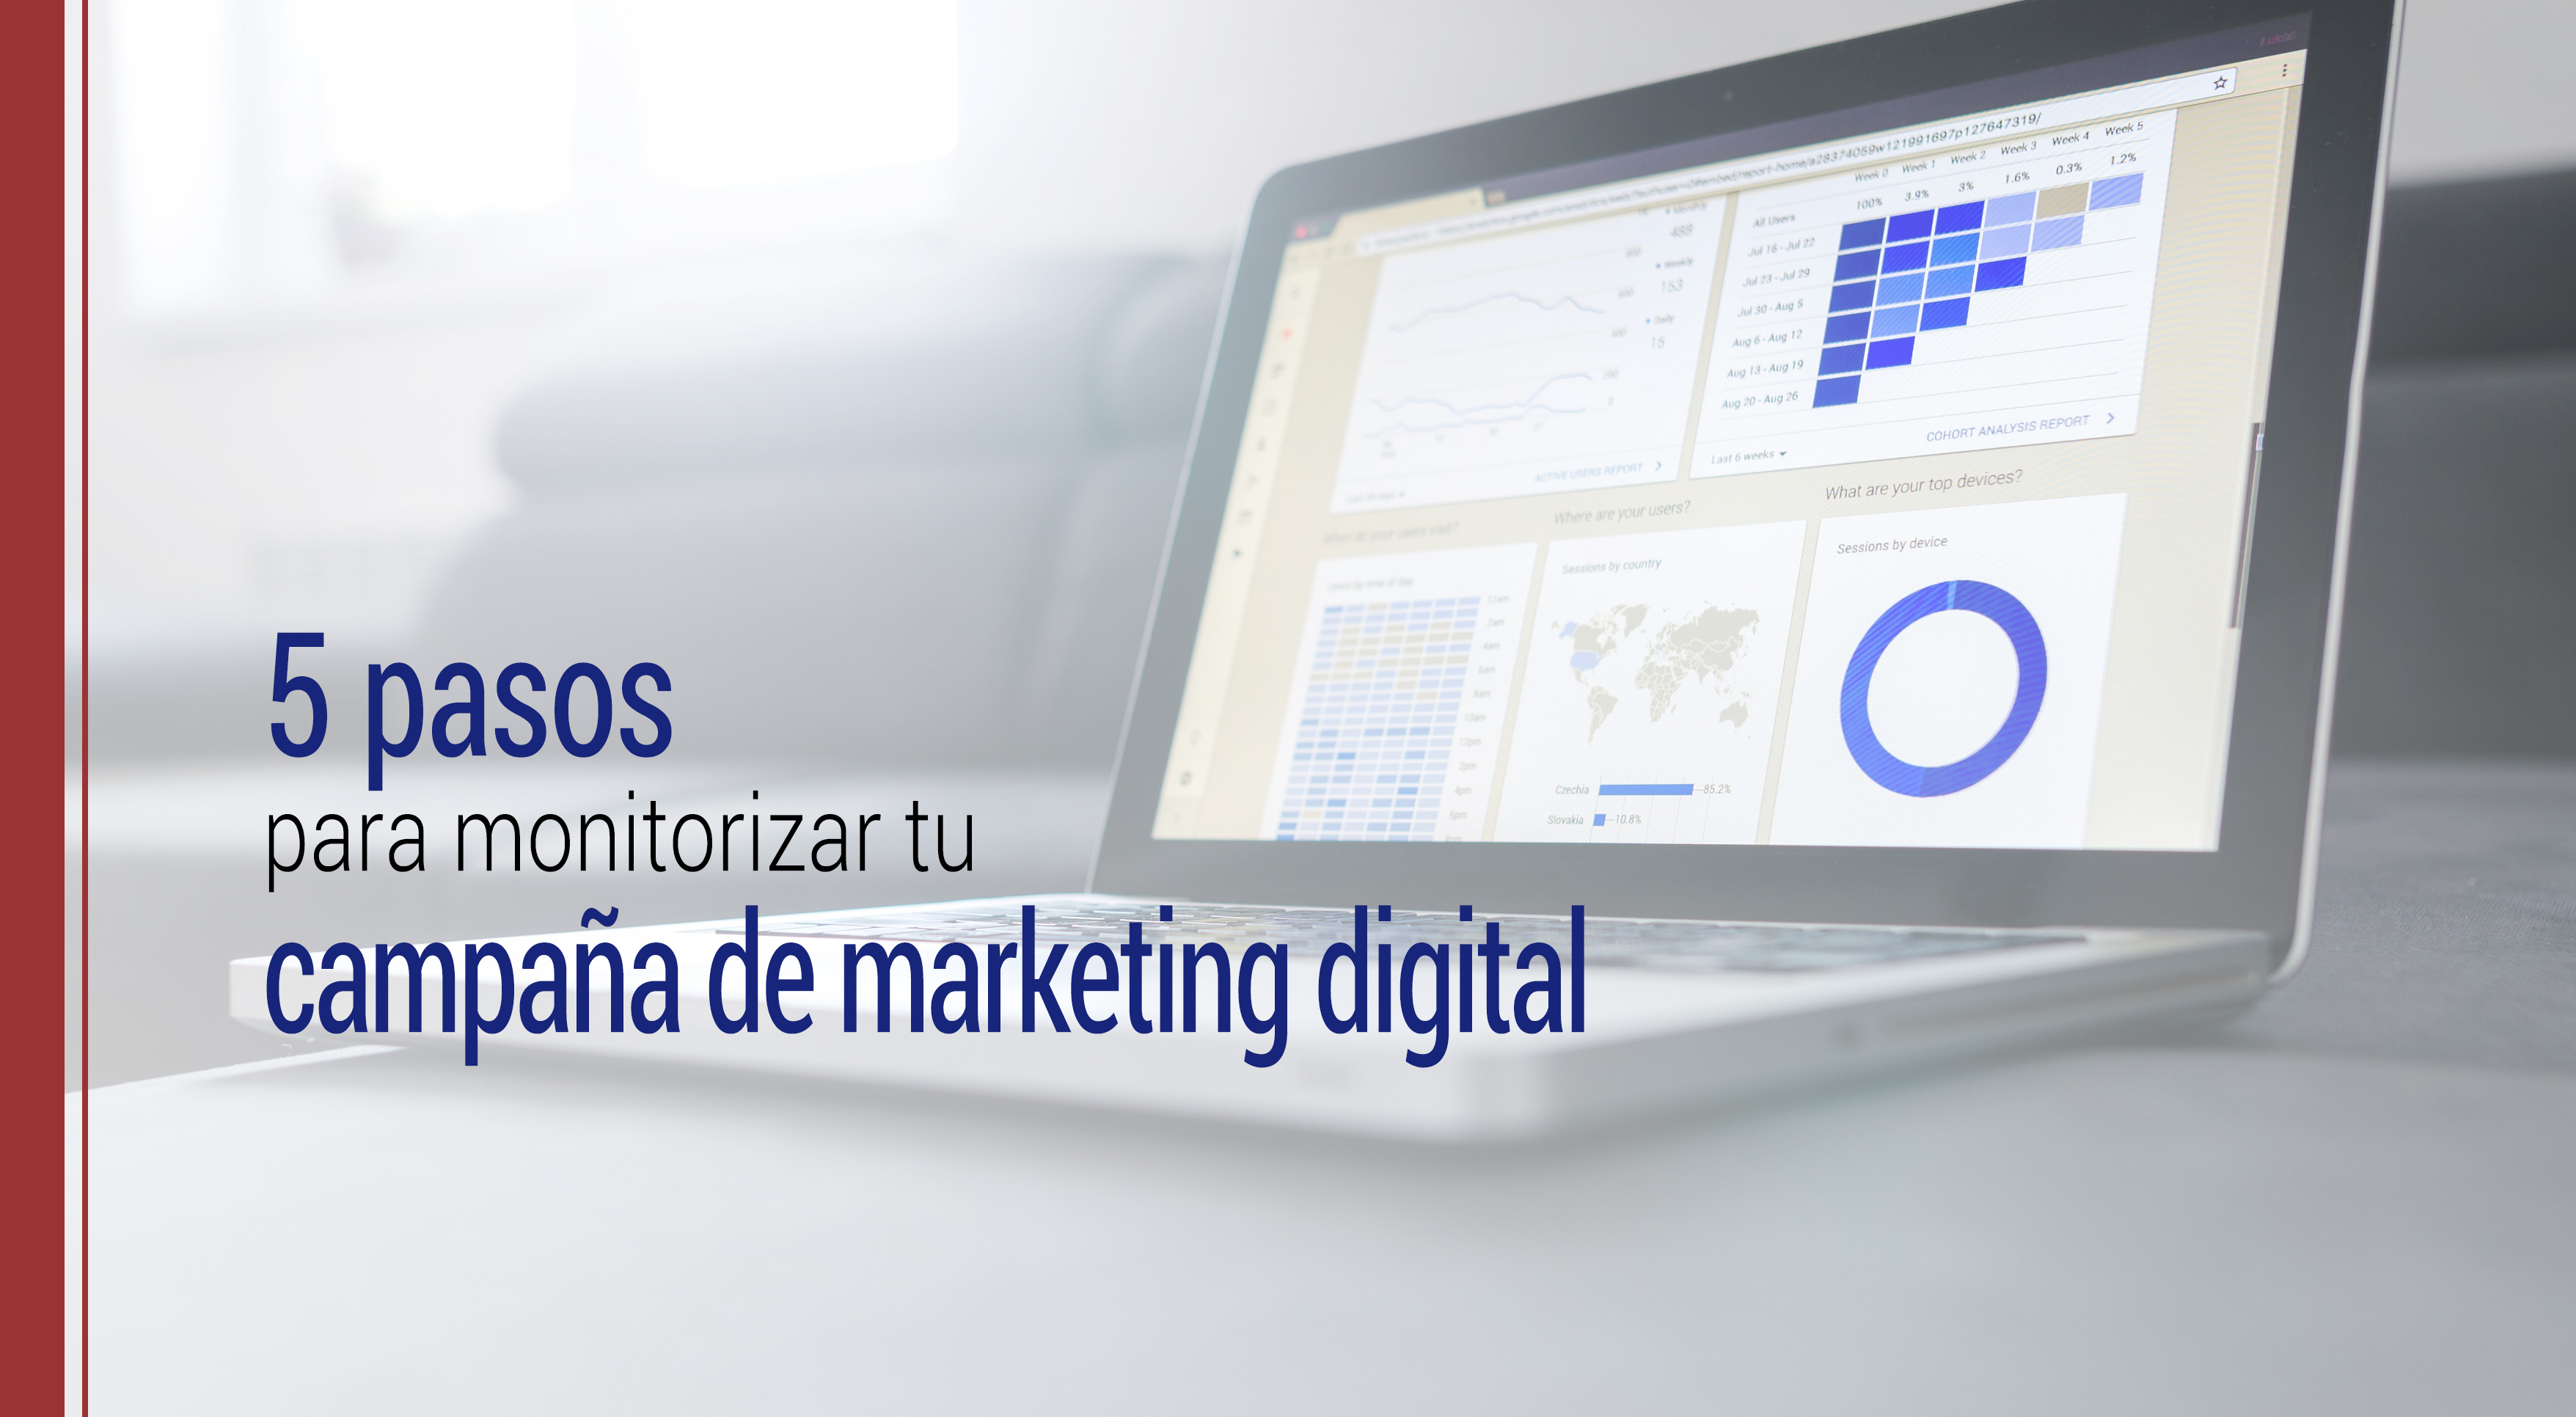 pasos para monitorizar una campaña de marketing digital